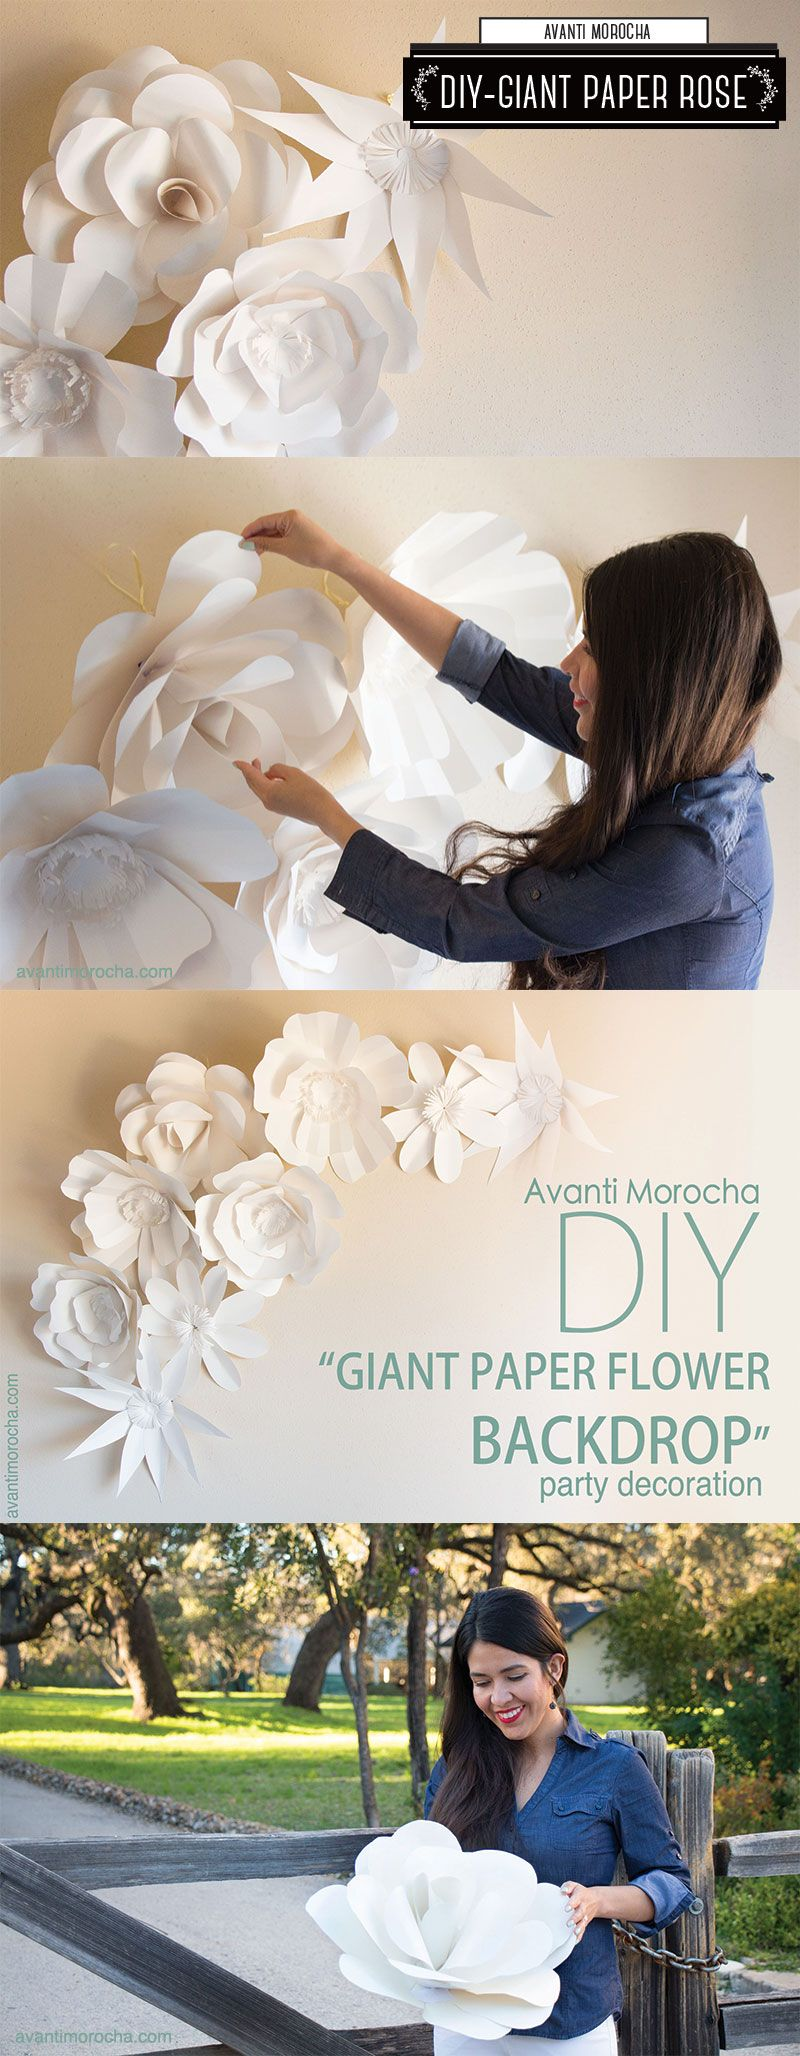 DIY Giant Paper Flower Backdrop / Mural de Flores Gigante / Weddings Bodas. Download the flowers templates from my blog avantimorocha.com or buy them with one click on my Etsy shop https://www.etsy.com/shop/AvantiMorochaDIYs  Please don't forget to share your creations on my Facebook page https://www.facebook.com/La...  or tag me on Instagram @avantimorocha_1 I'd love to see them :)